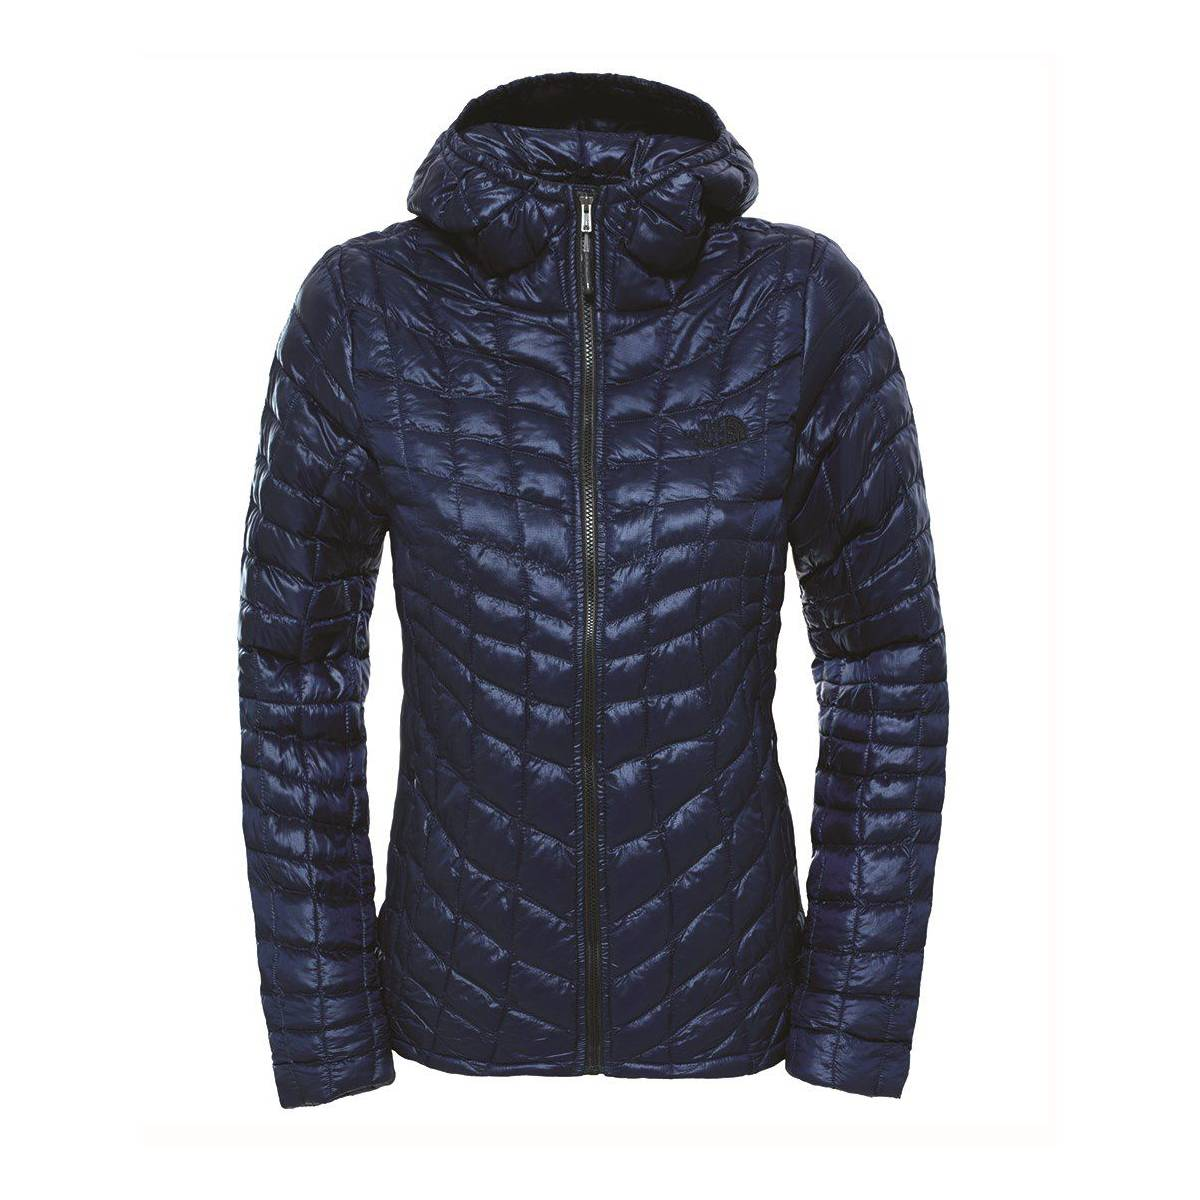 the north face - w thermoball hoodie - eu bayan mont fw17 mavi 258116893